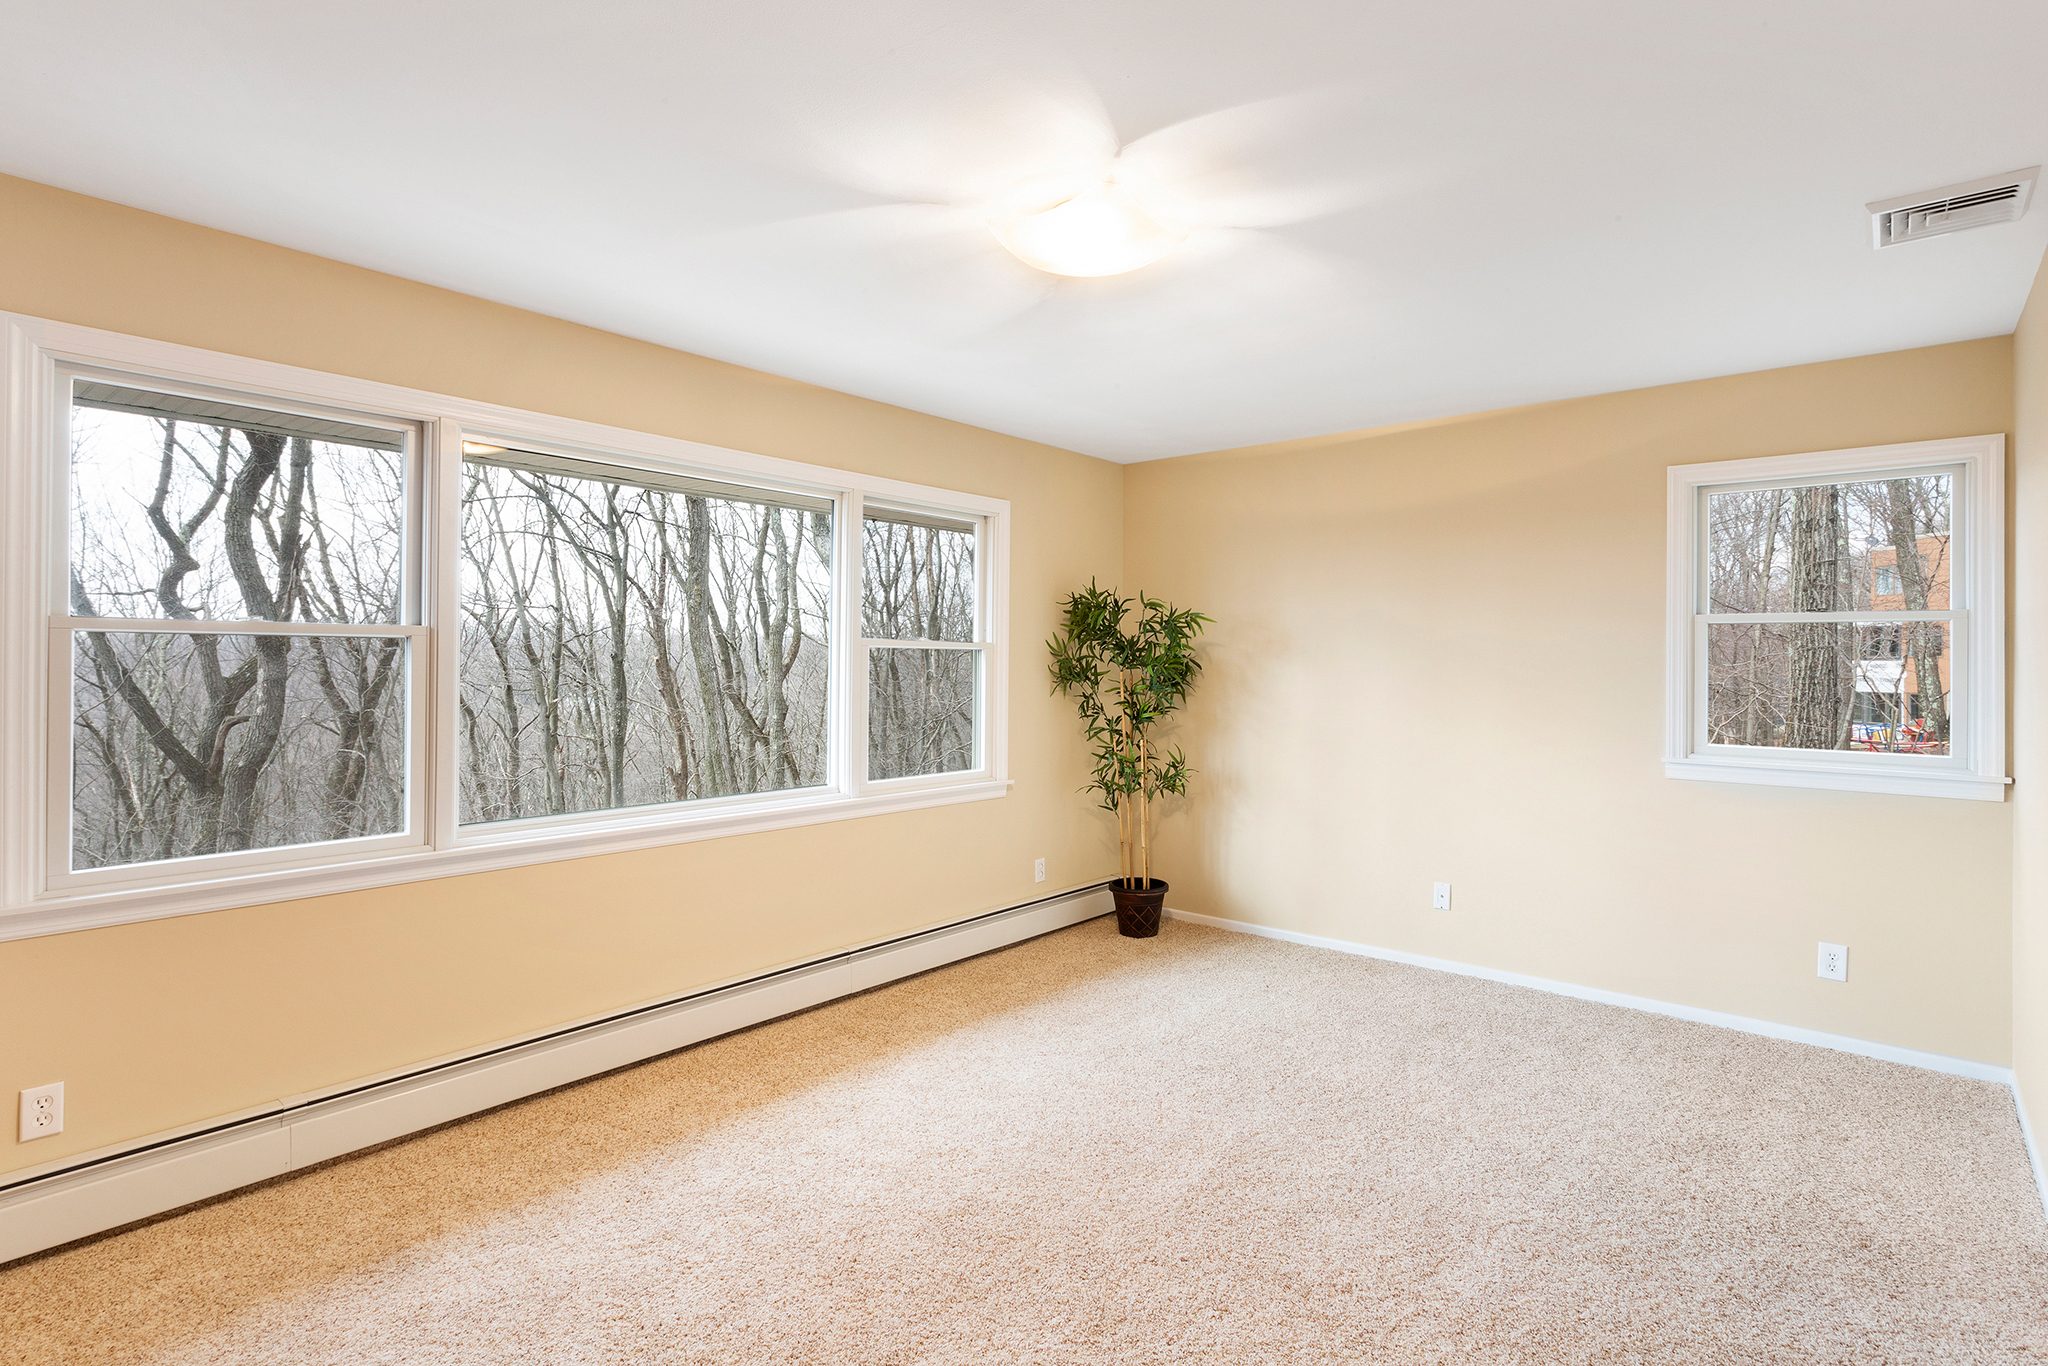 06 5 Lenore Road Tewksbury Township — Master BR